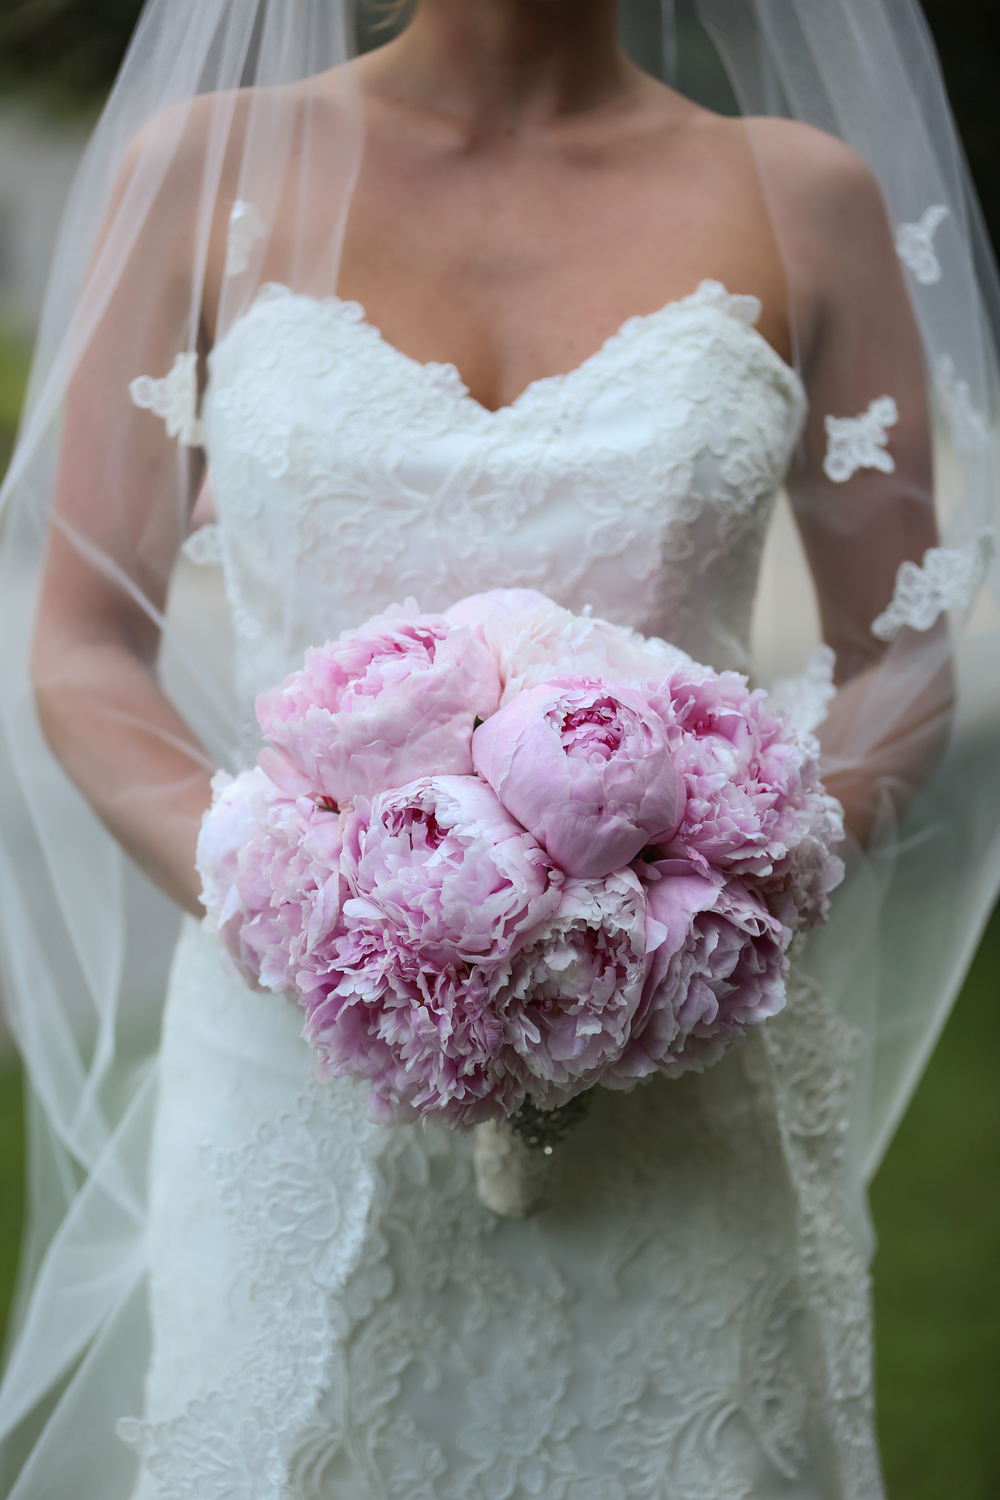 Full bridal bouquet pink peonies by Courtenay Lambert Florals (http://courtenaylambert.com).  Cincinnati Wedding flowers, destination wedding, florist, best florist, best flowers, pink peonies, Kenwood Country Club, Cincinnati weddings, Ohio weddings